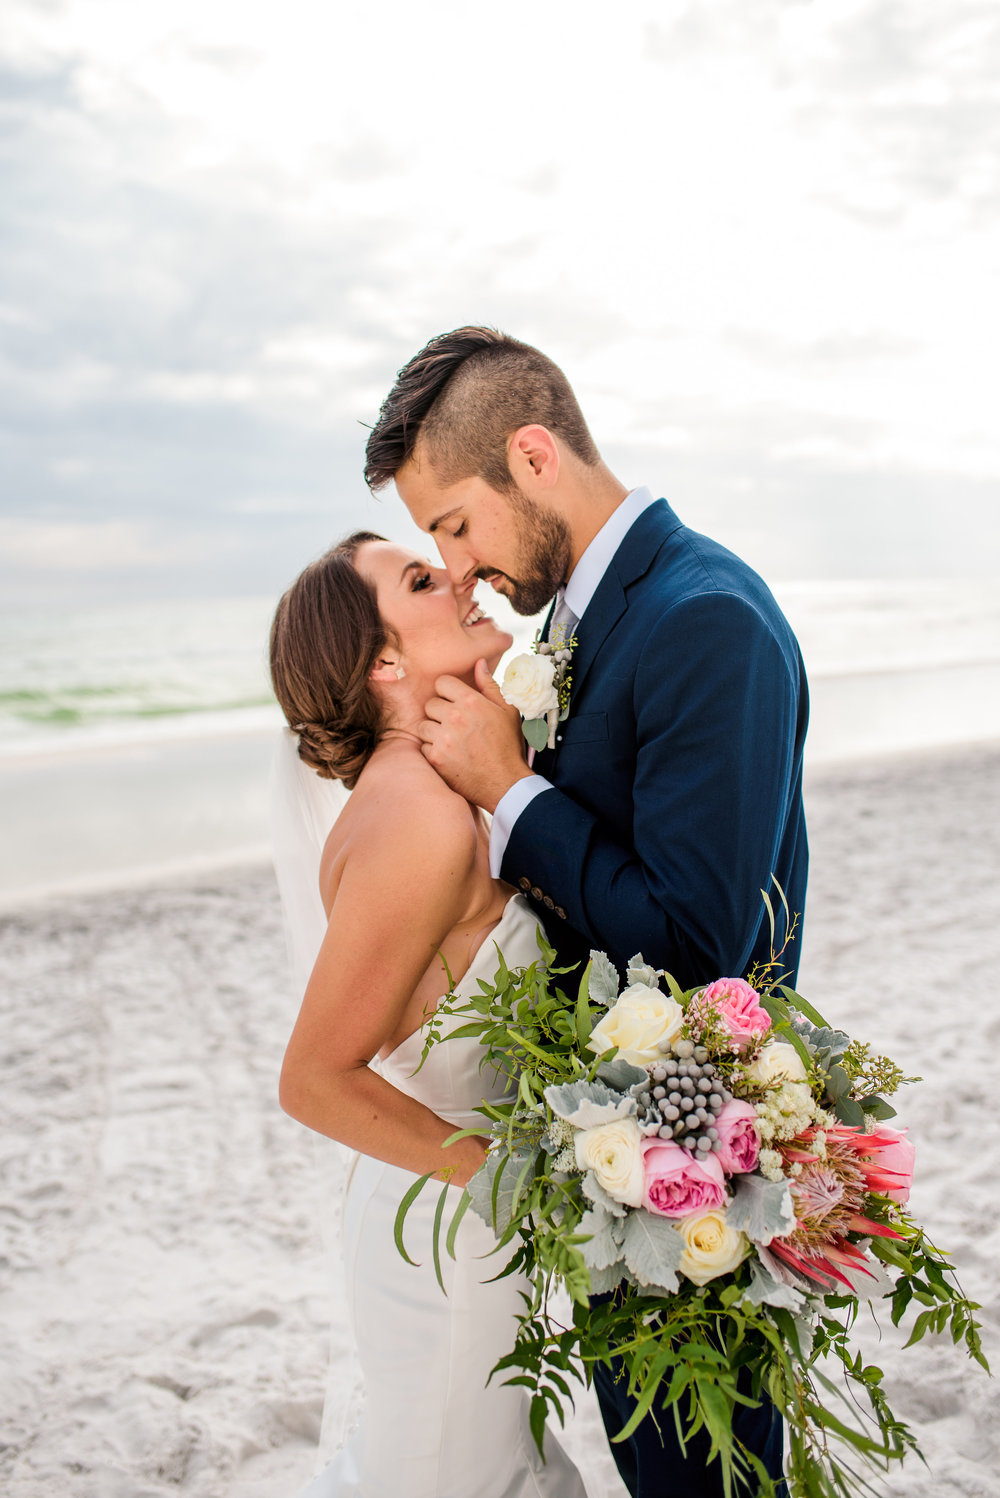 Santa Rosa Beach Wedding22.jpg